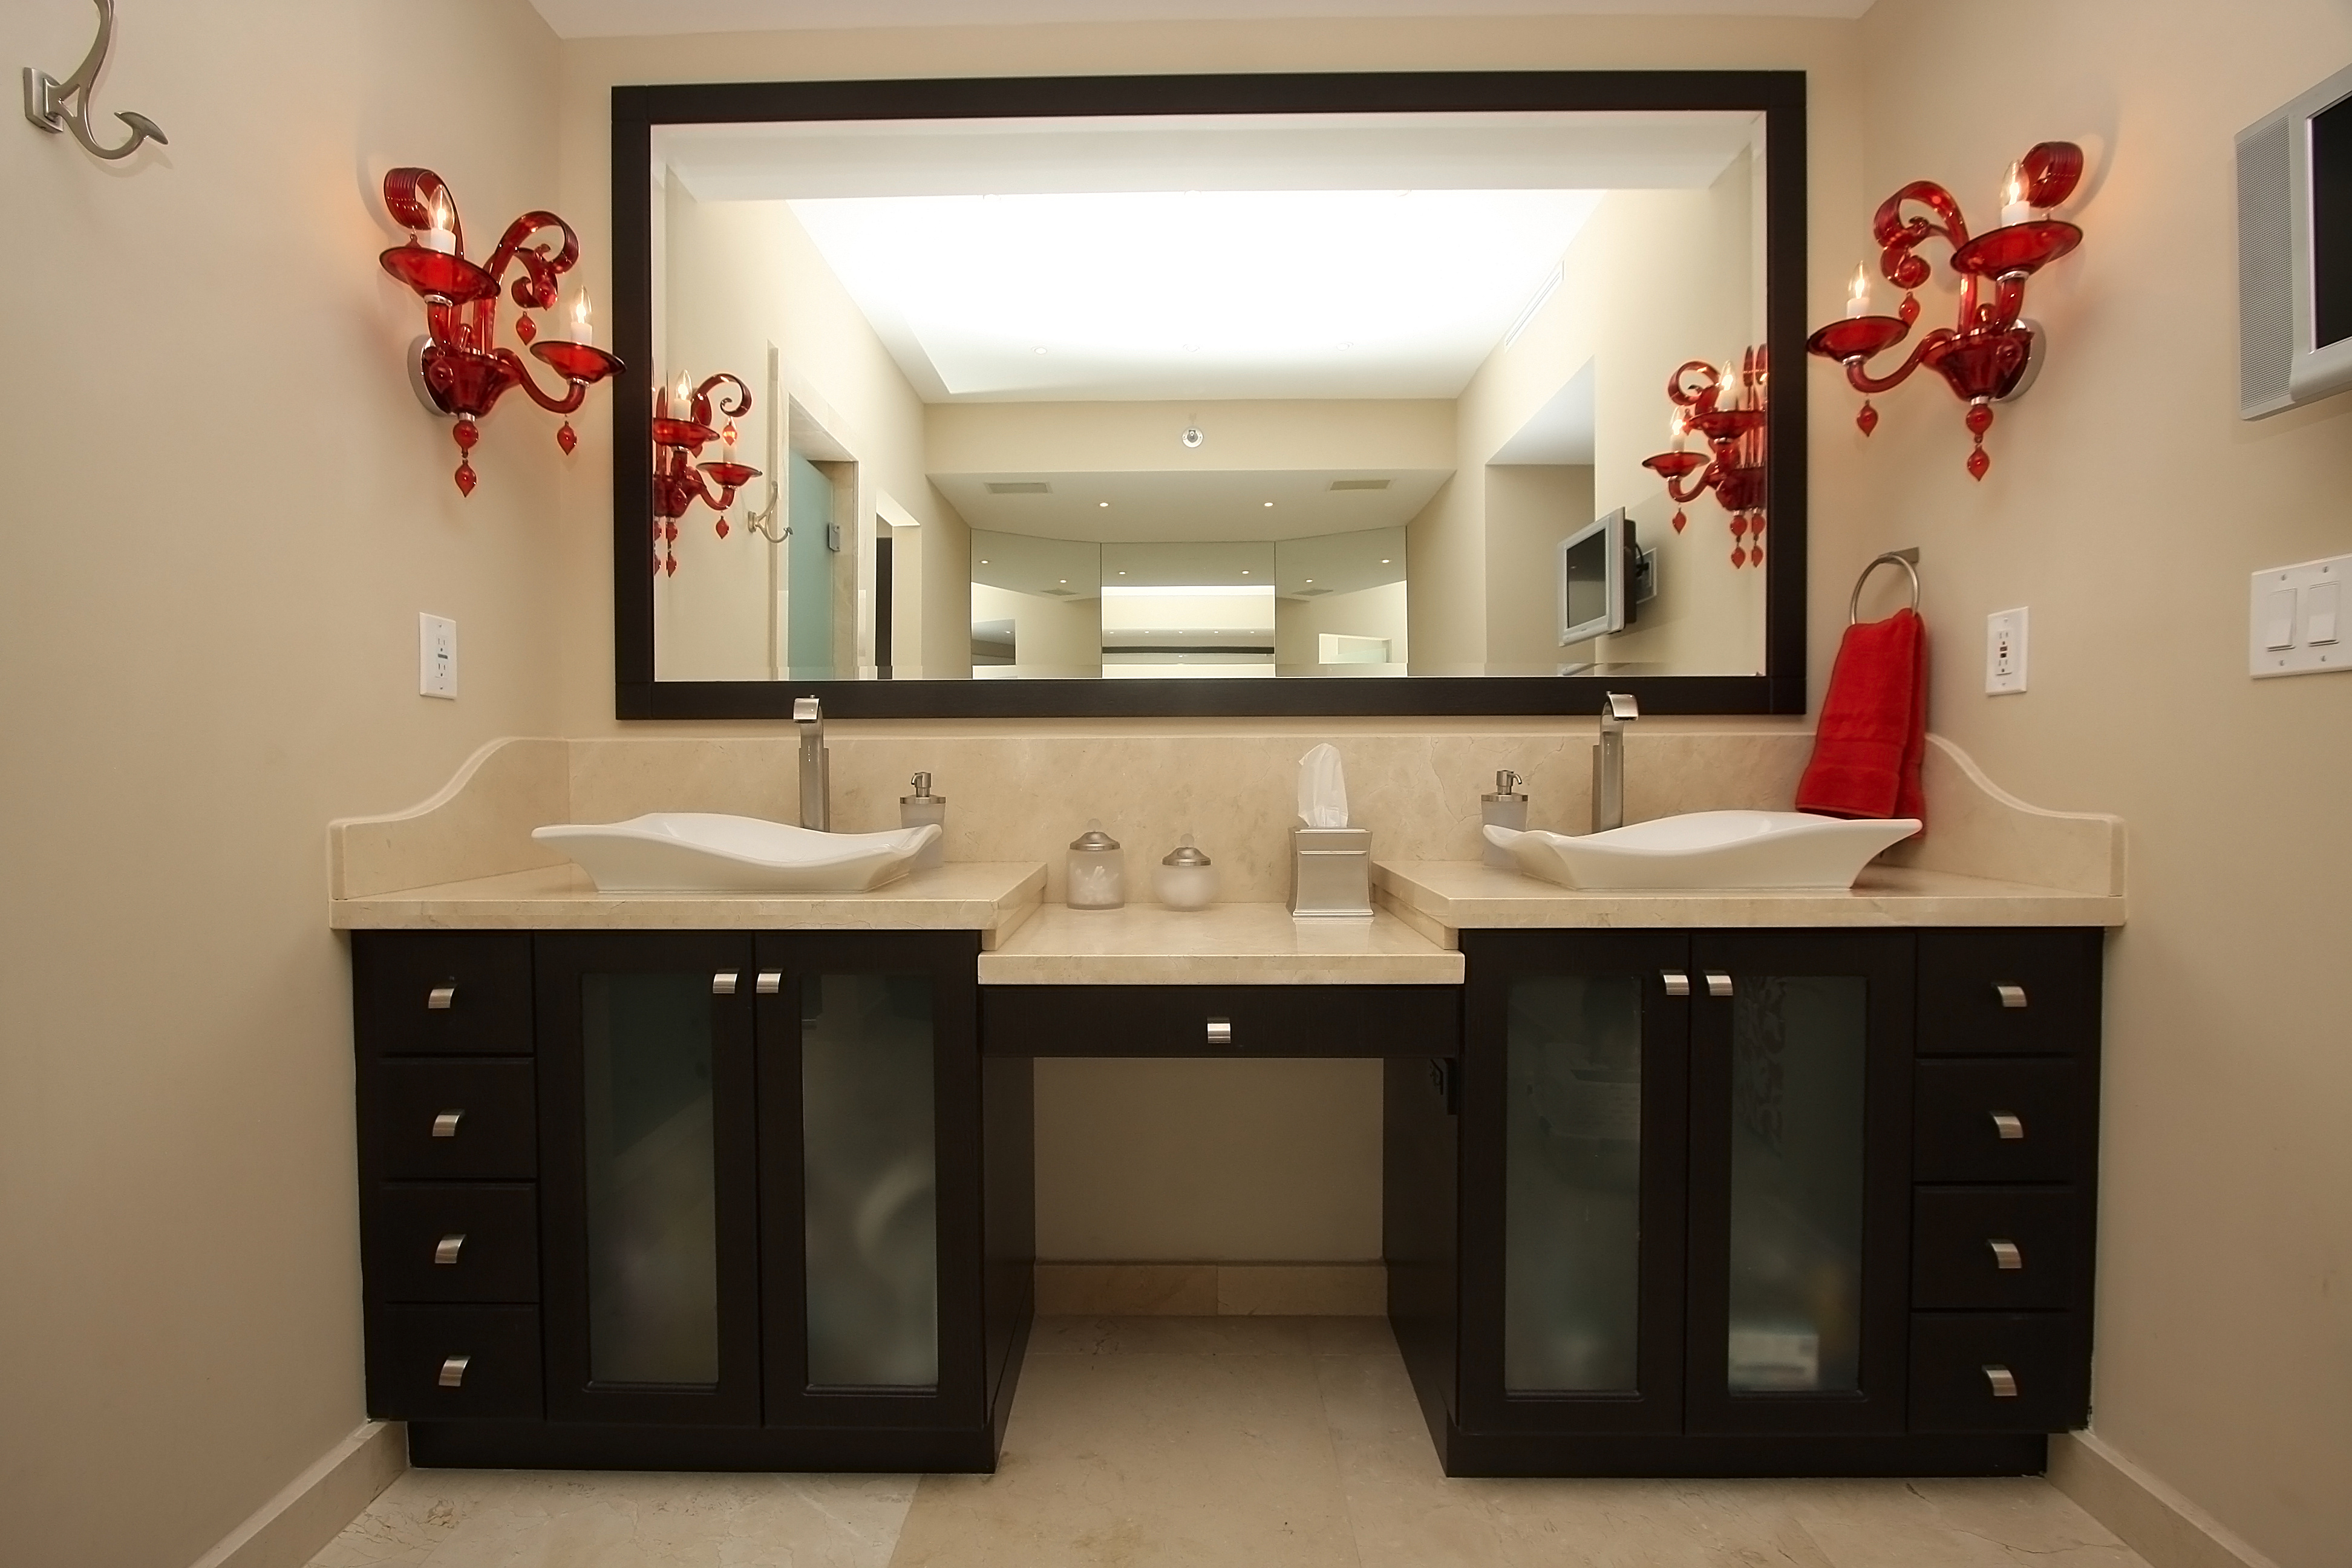 5 tips on organizing your bathroom cabinets and countertops for Bathroom cabinet organizing ideas